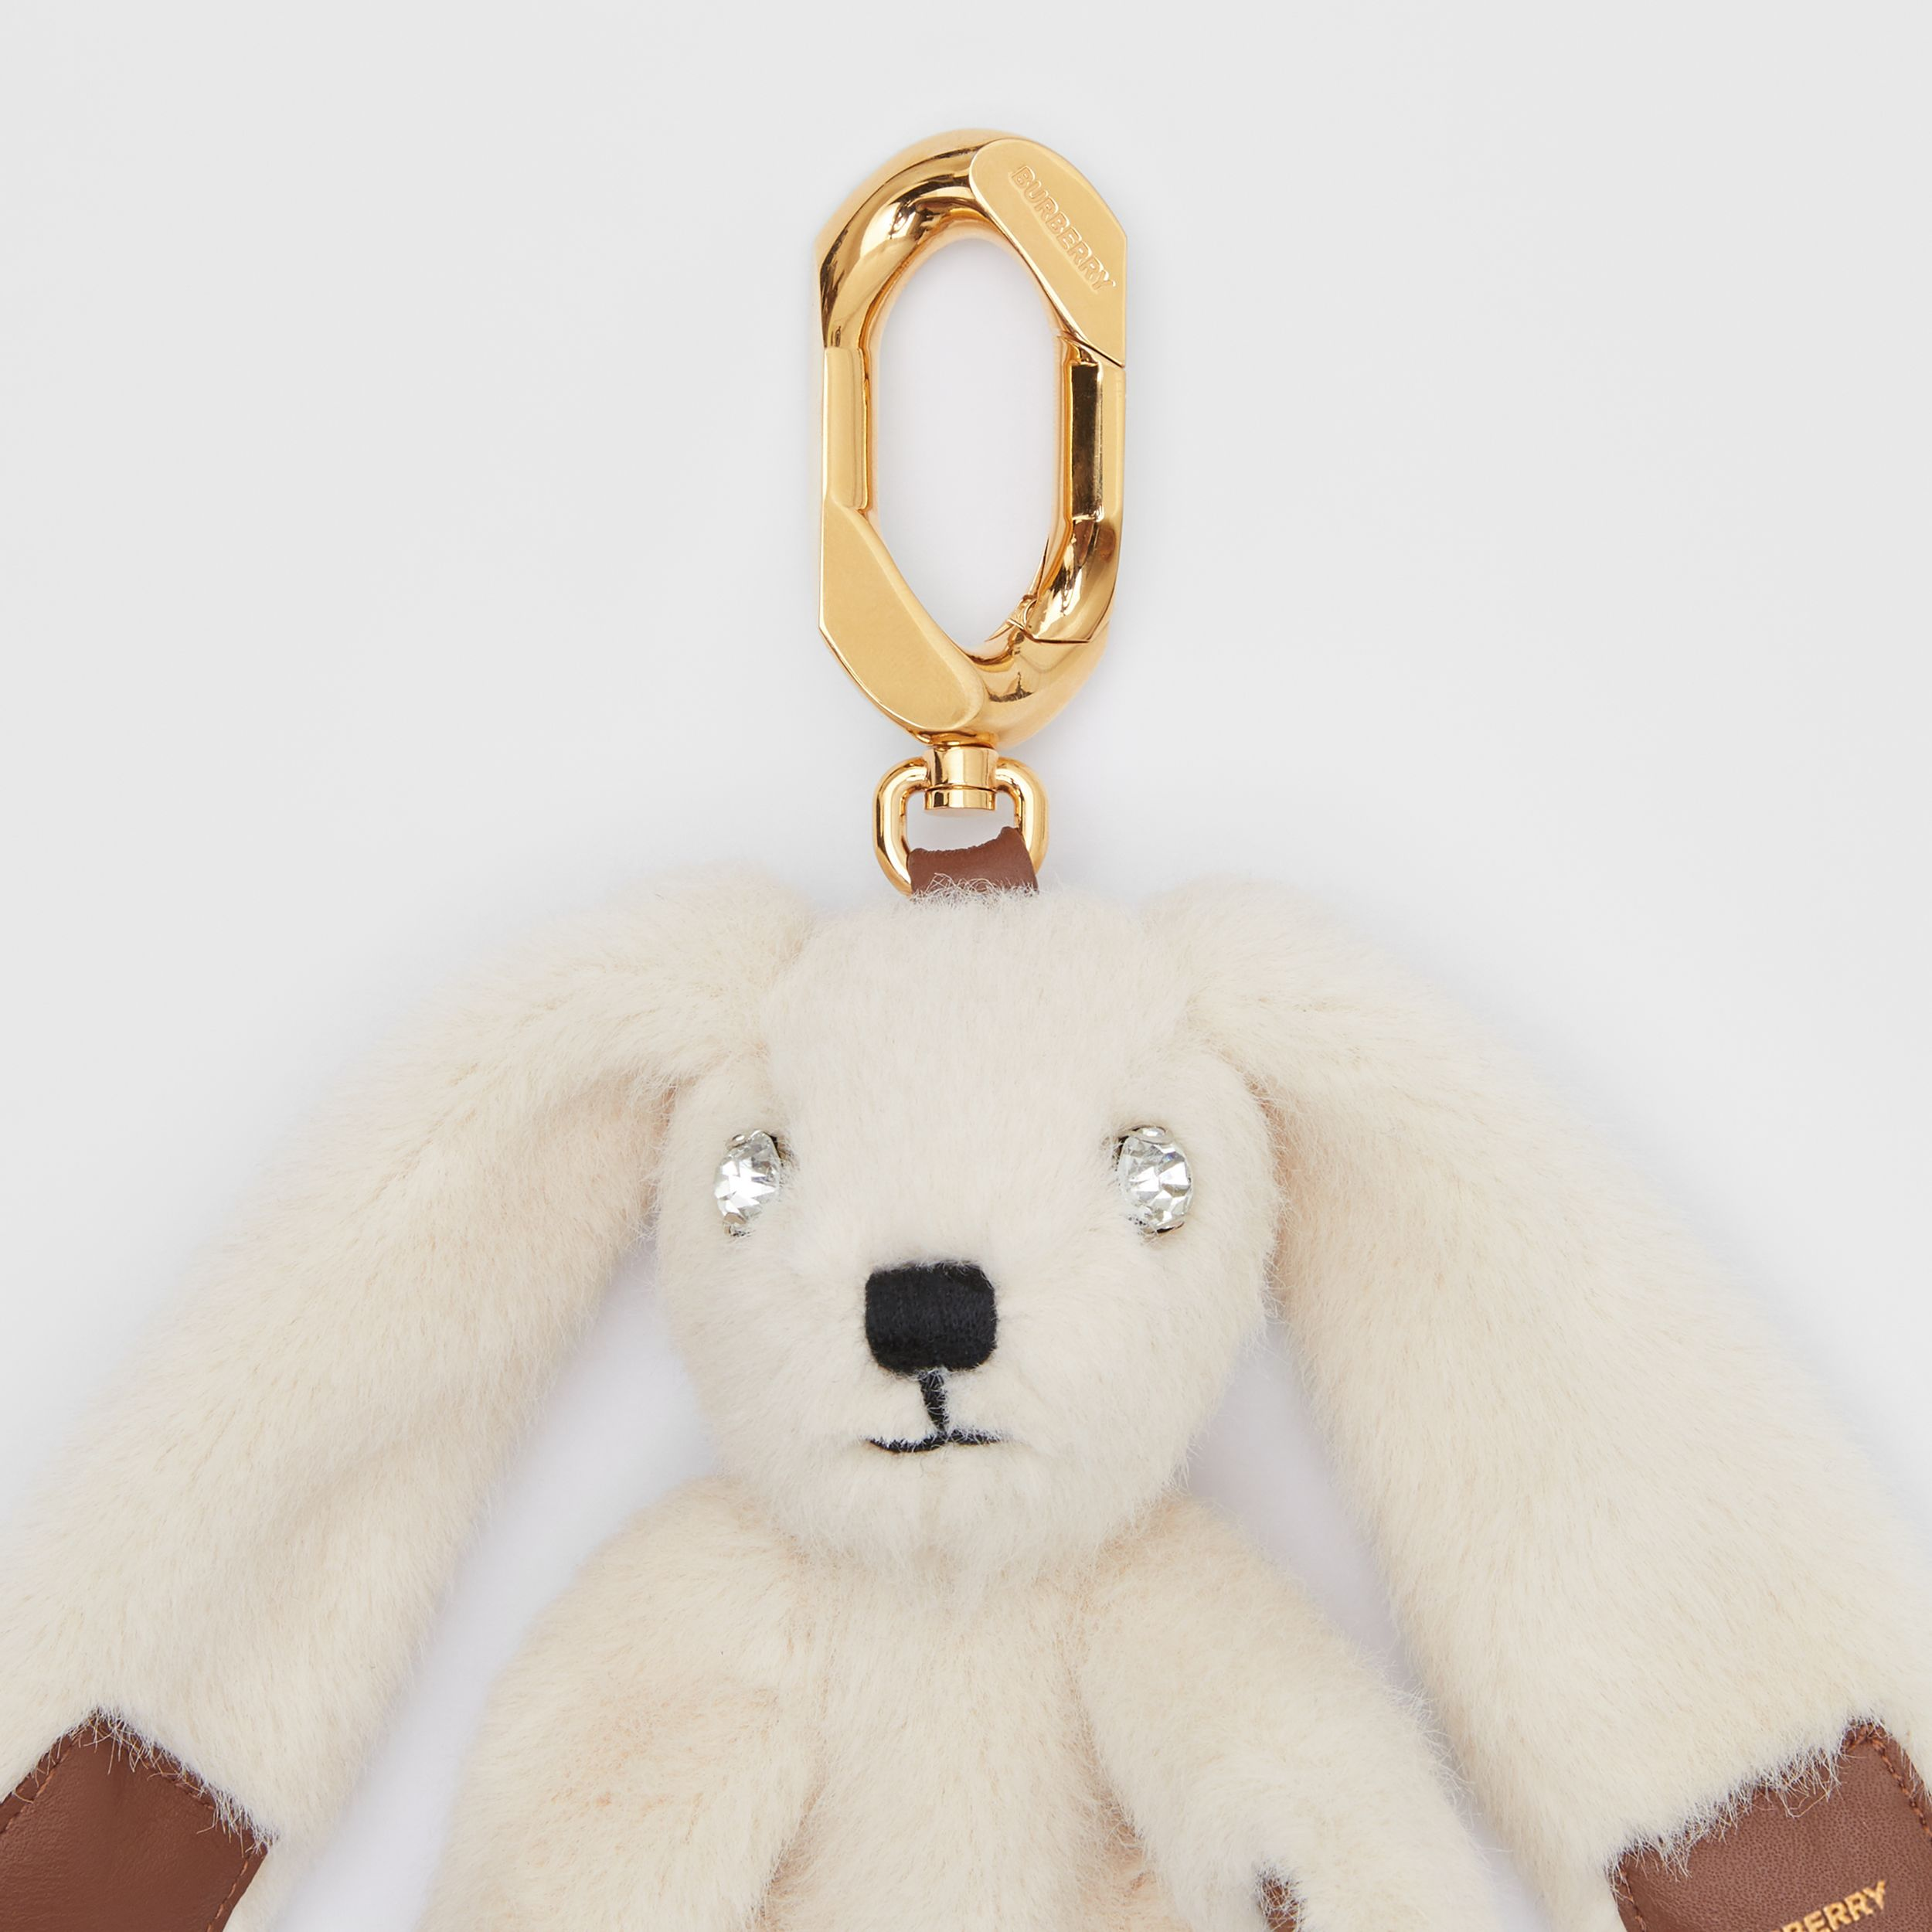 Embellished Faux Fur and Leather Rabbit Charm in Buttermilk | Burberry - 2